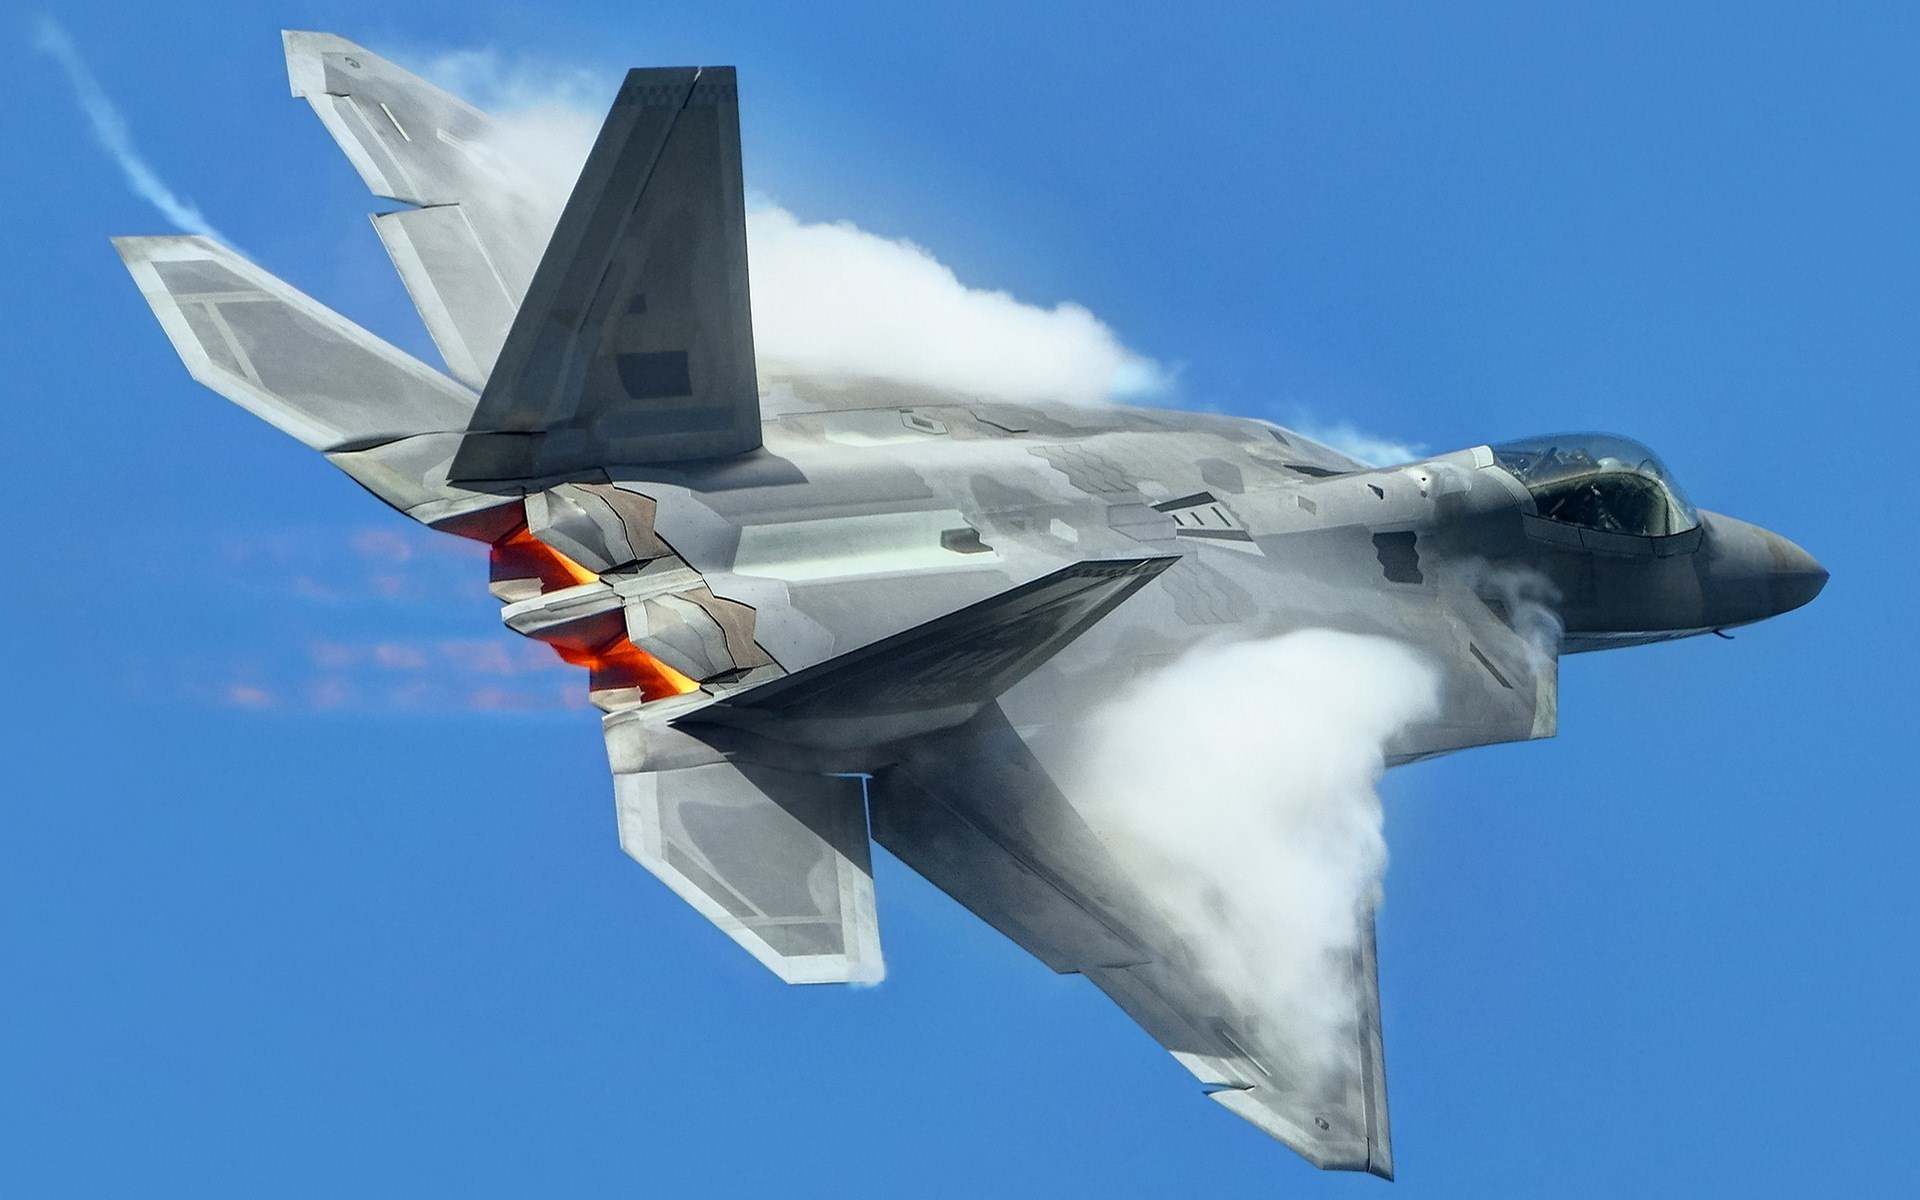 F-22 Raptor Hockheed Martin US Air Force